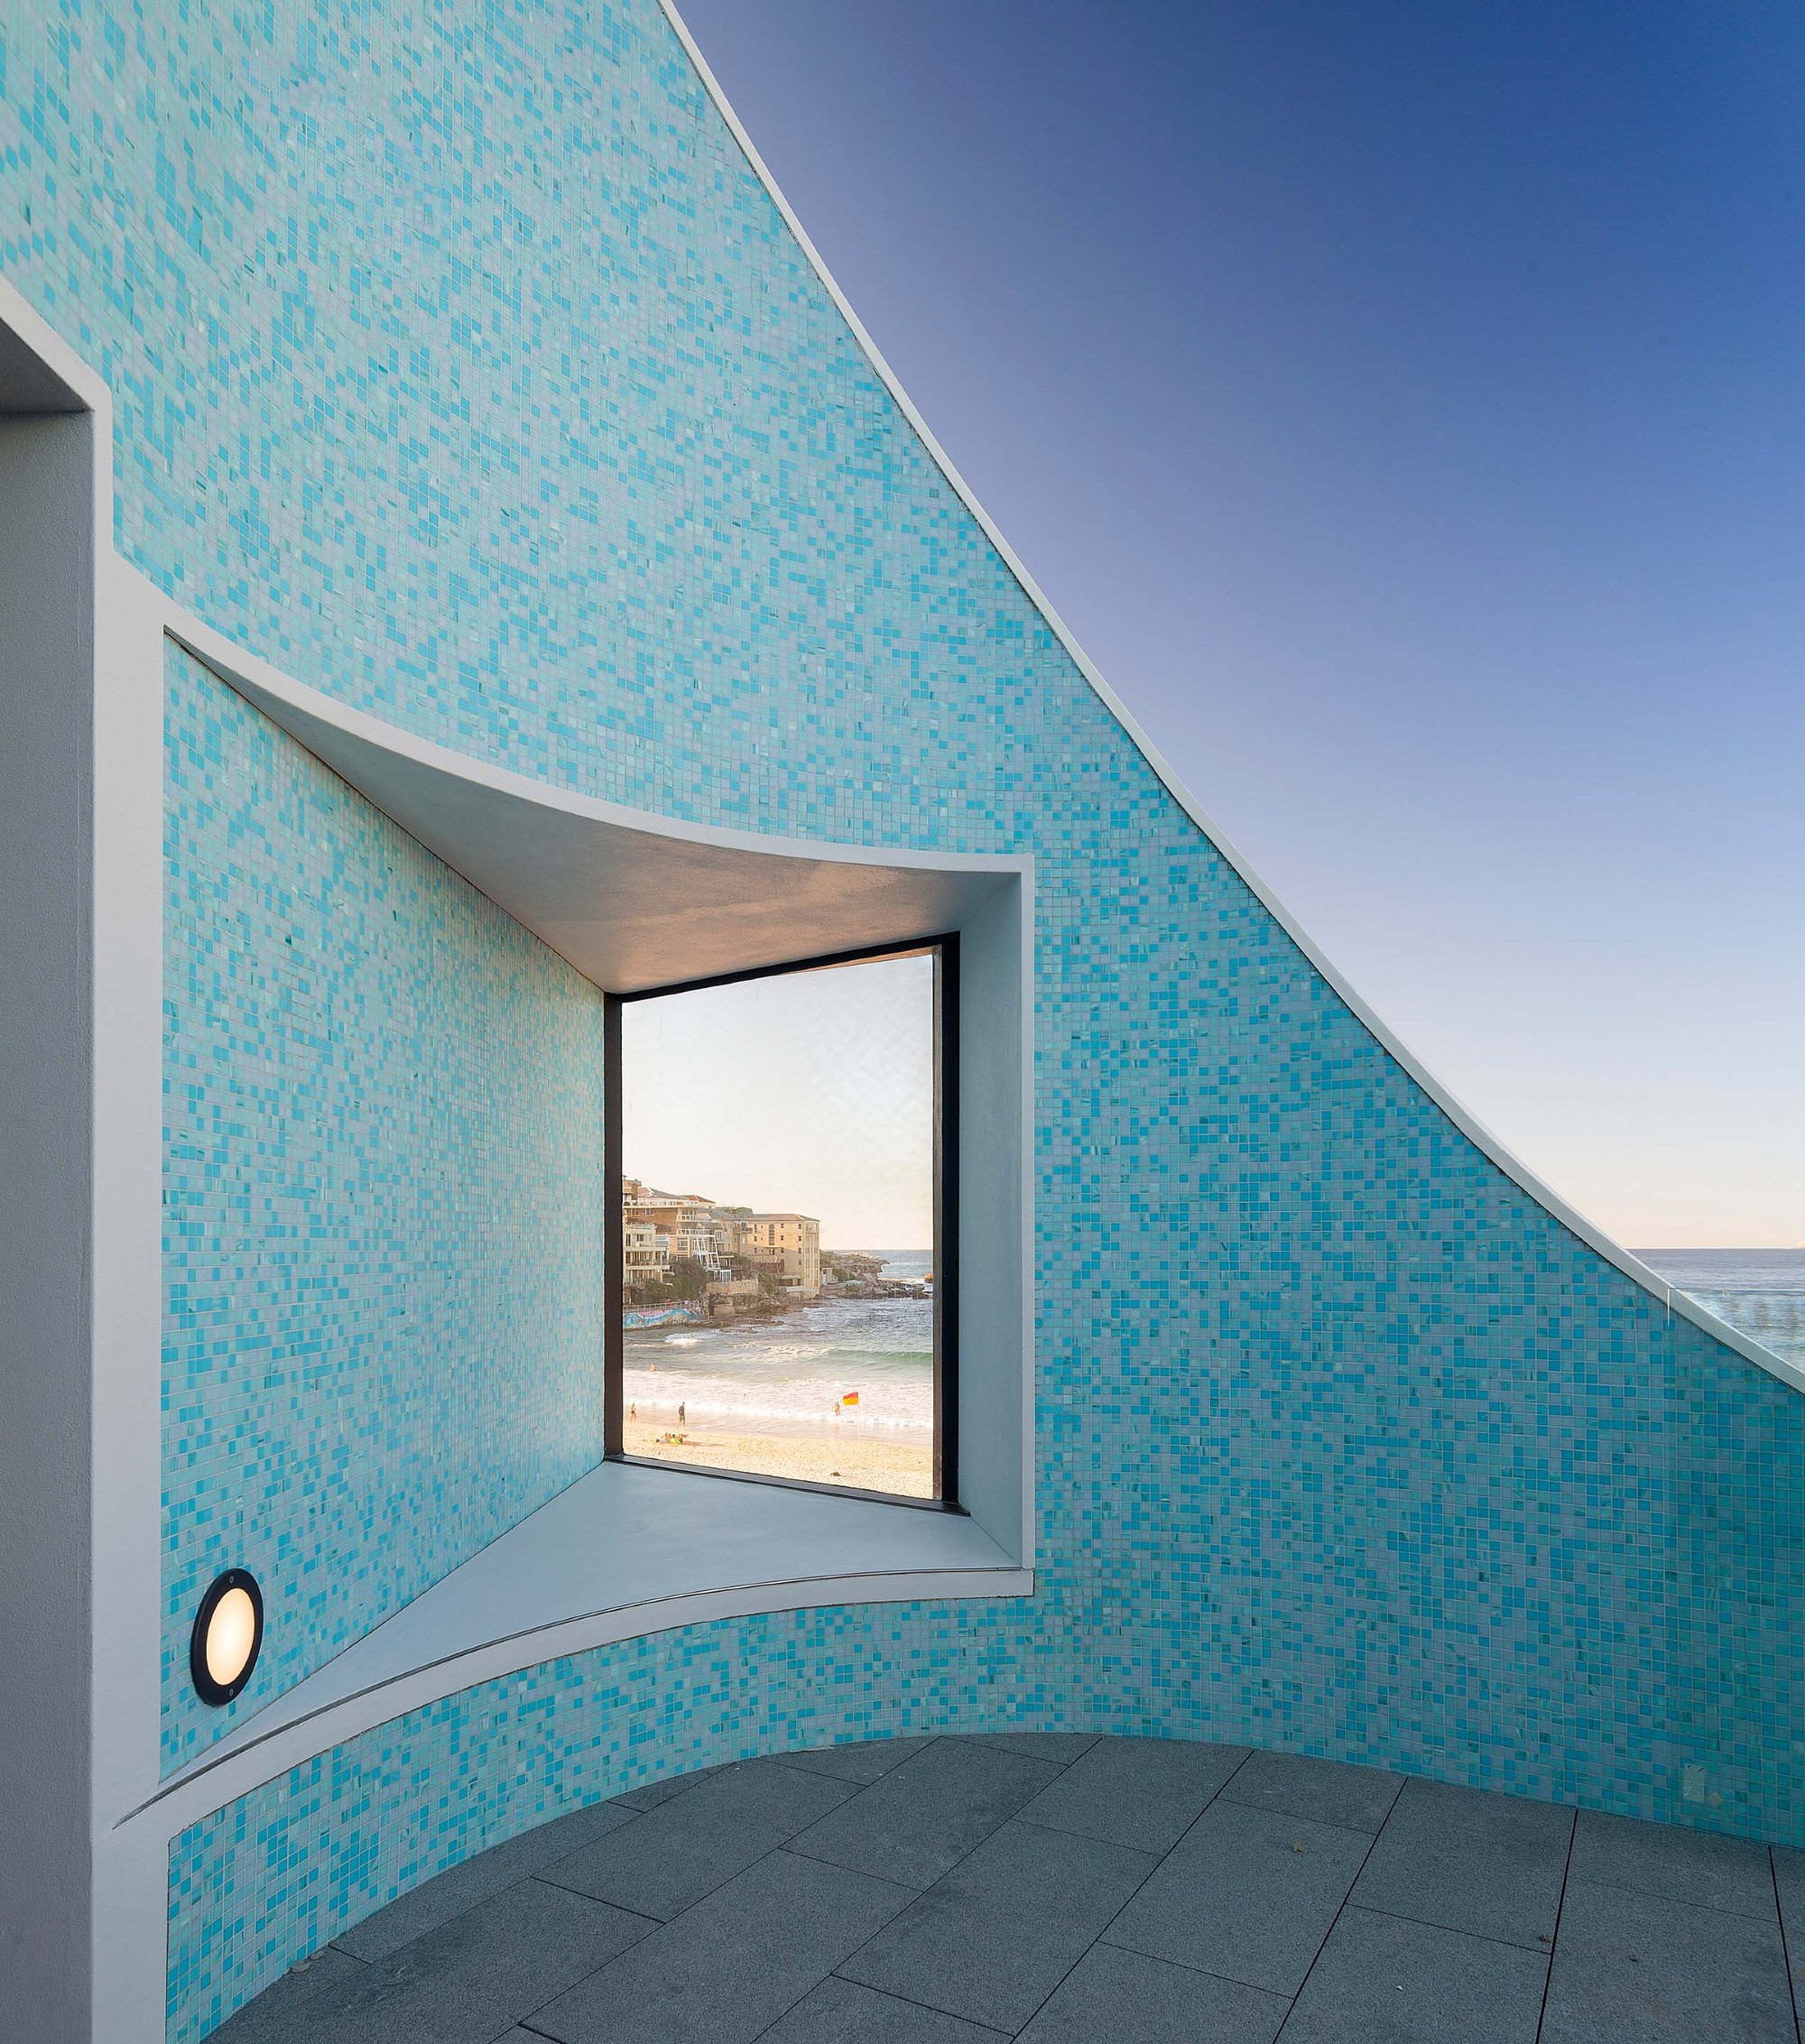 The million dollar view of Bondi Beach from the @northbondislscclubhouse. Sunday drinks from this balcony are famous! The award winning building, designed by architects@DurbachBlockJaggers, was opened in September 2013 and is now considered Australia's most iconic surf lifesaving clubhouse.#bondibeach #northbondiPic: Durbach Block Jaggers